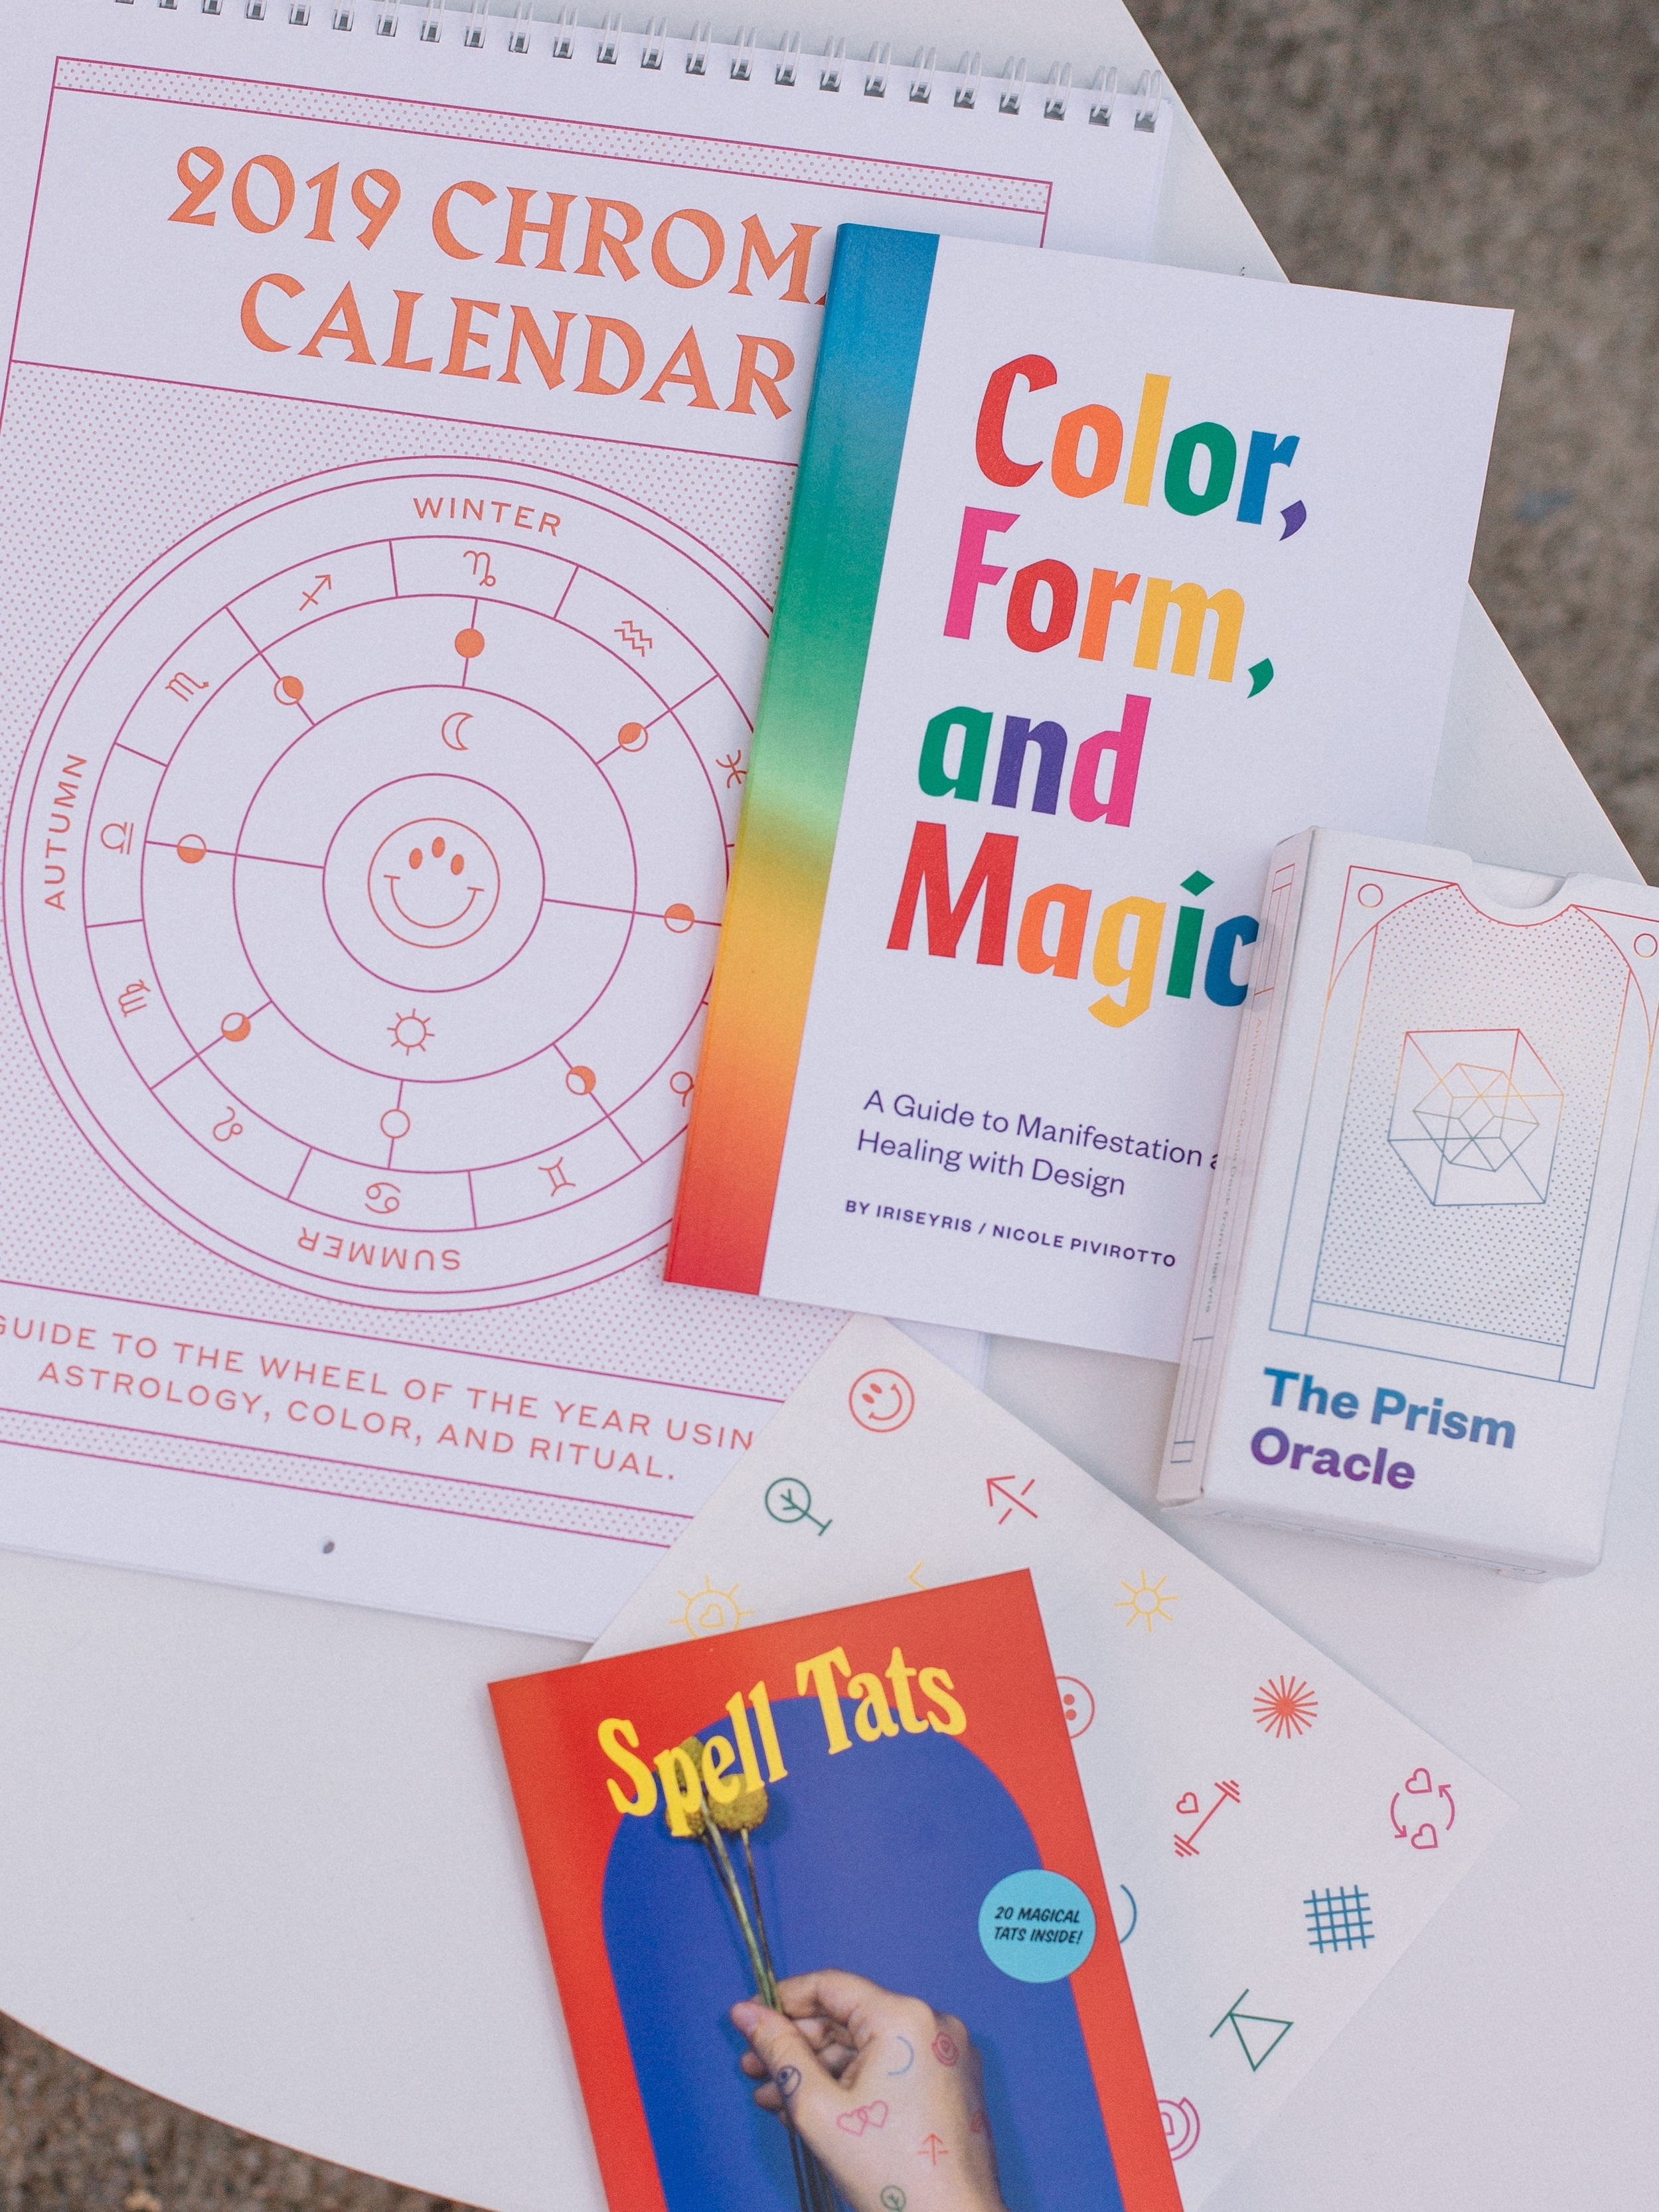 Color, Form & Magic Book by IrisEyris